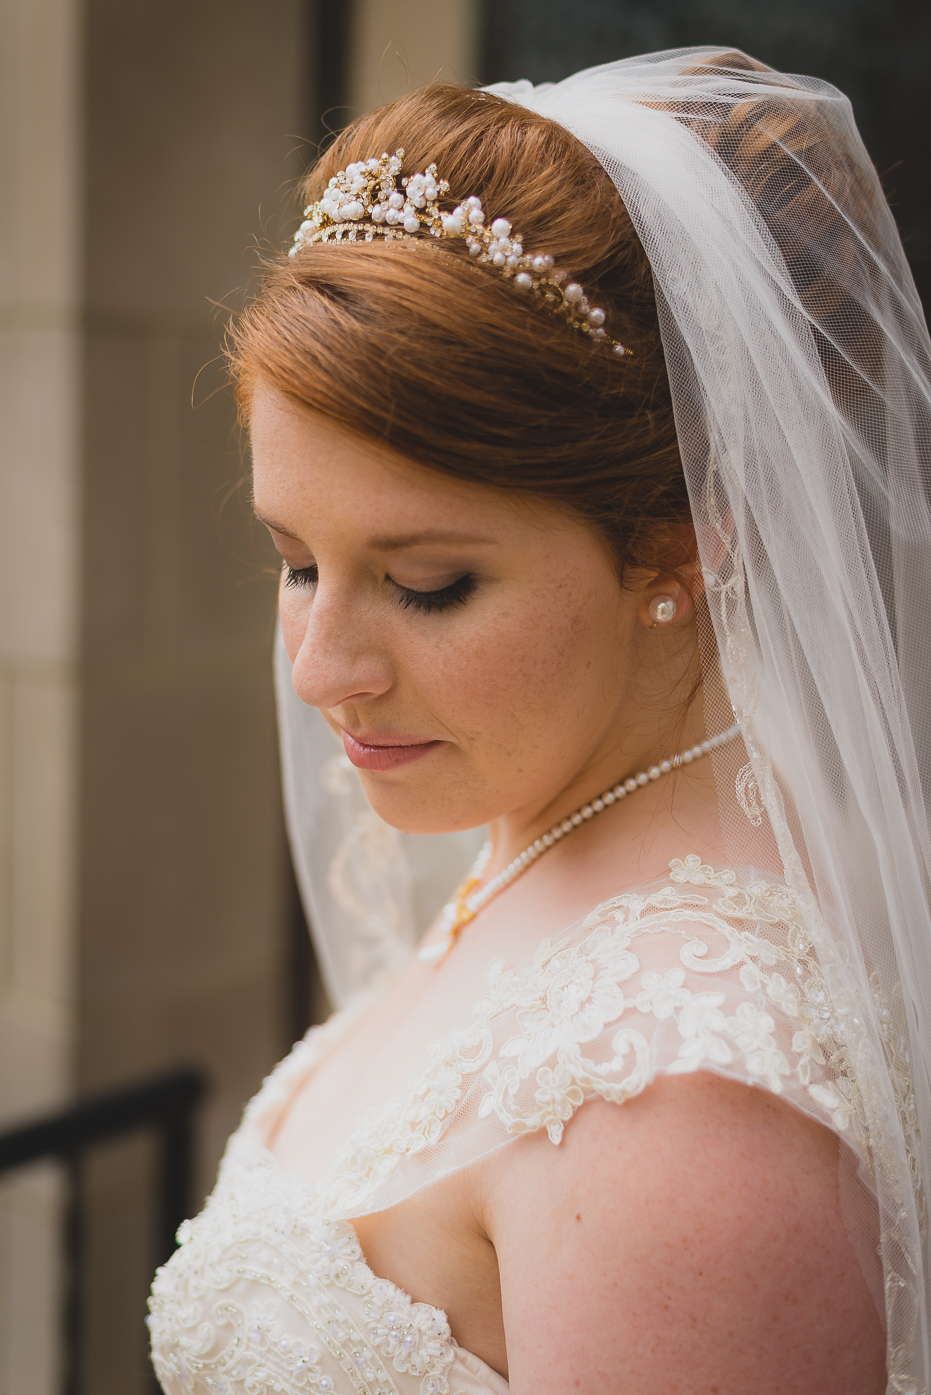 Bride with veil and pearl headband